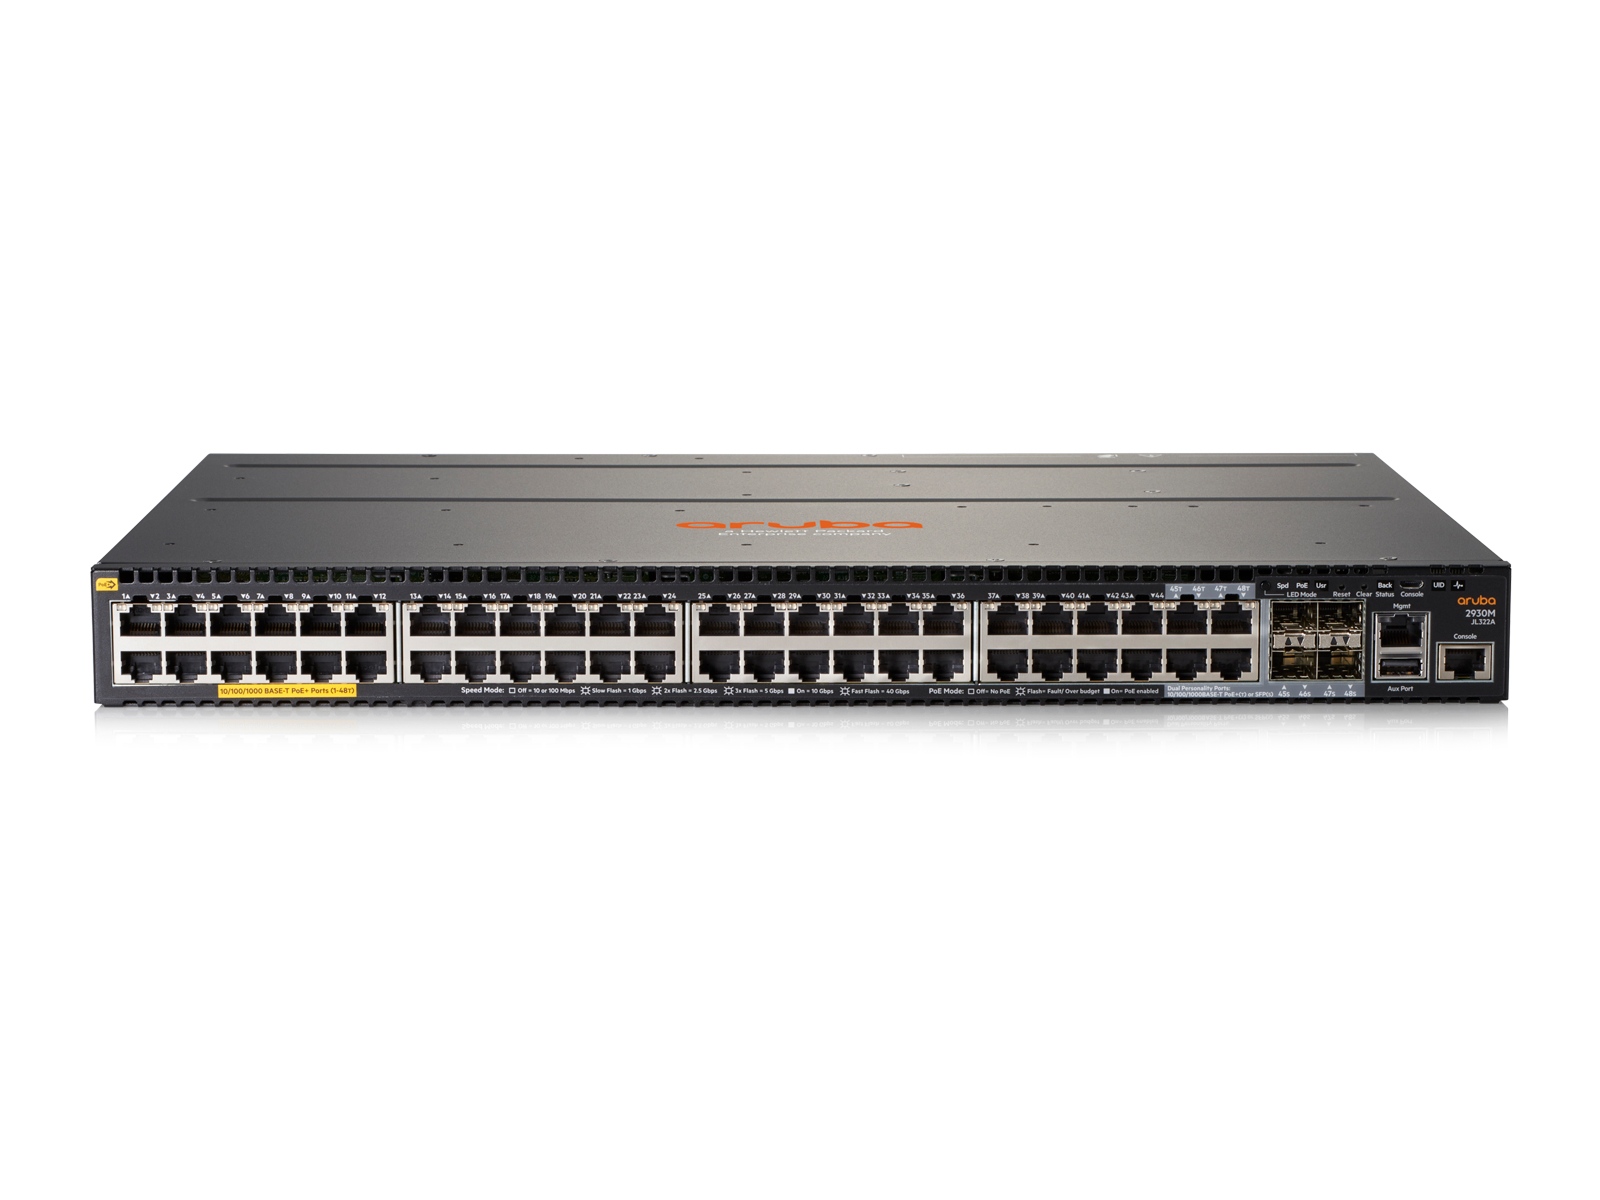 HPE JL322A ARUBA 2930M 48G POE+ 1-SLOT SWITCH